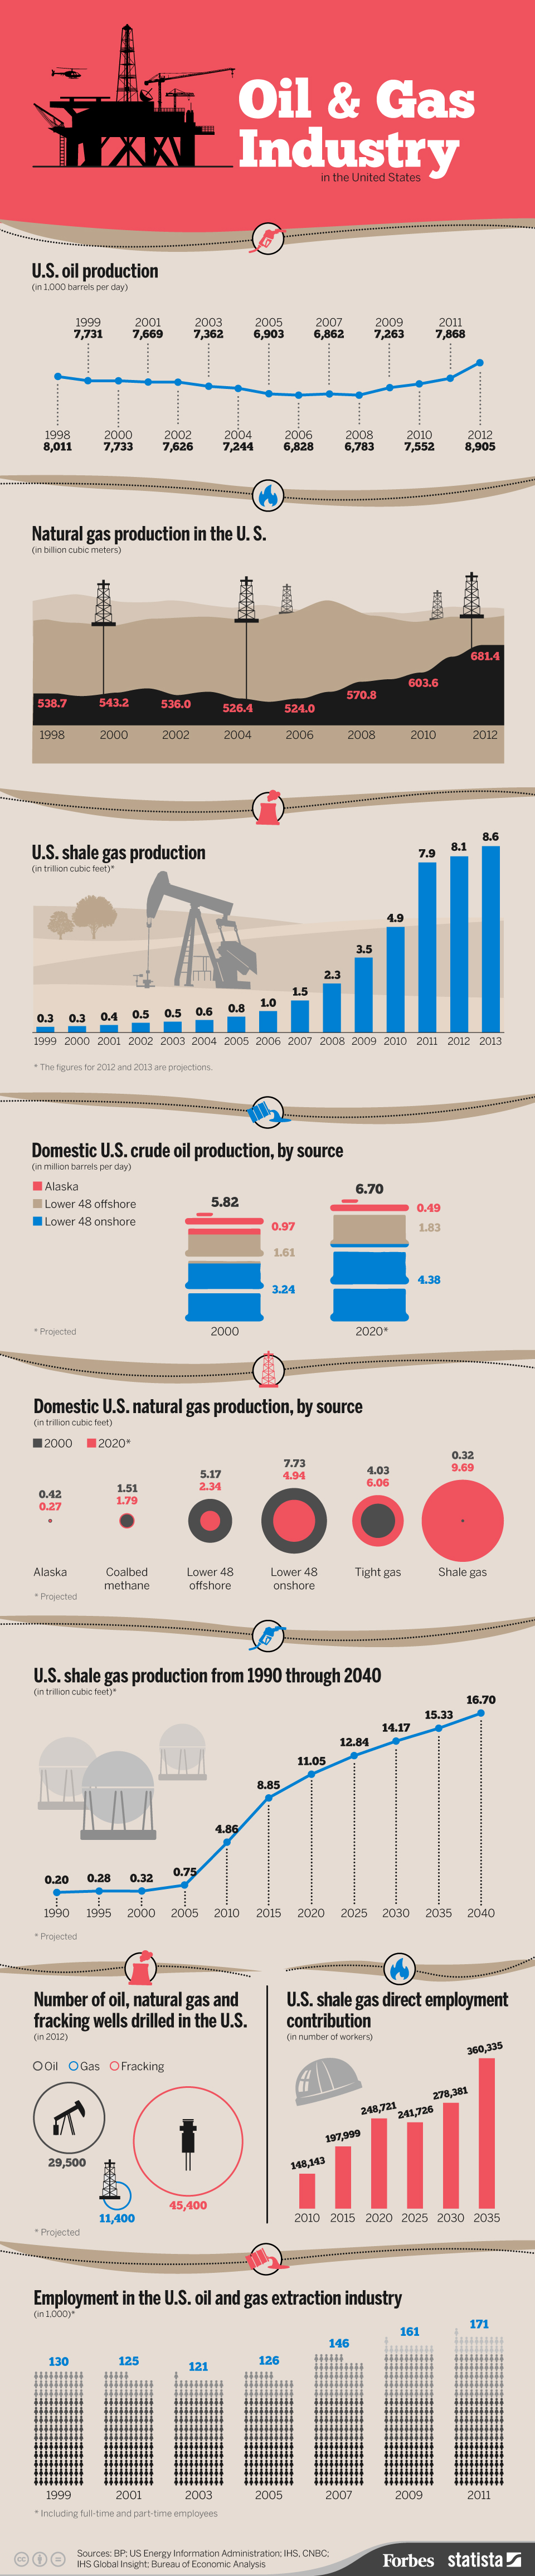 By the Numbers: The Oil & Gas Industry in the United States